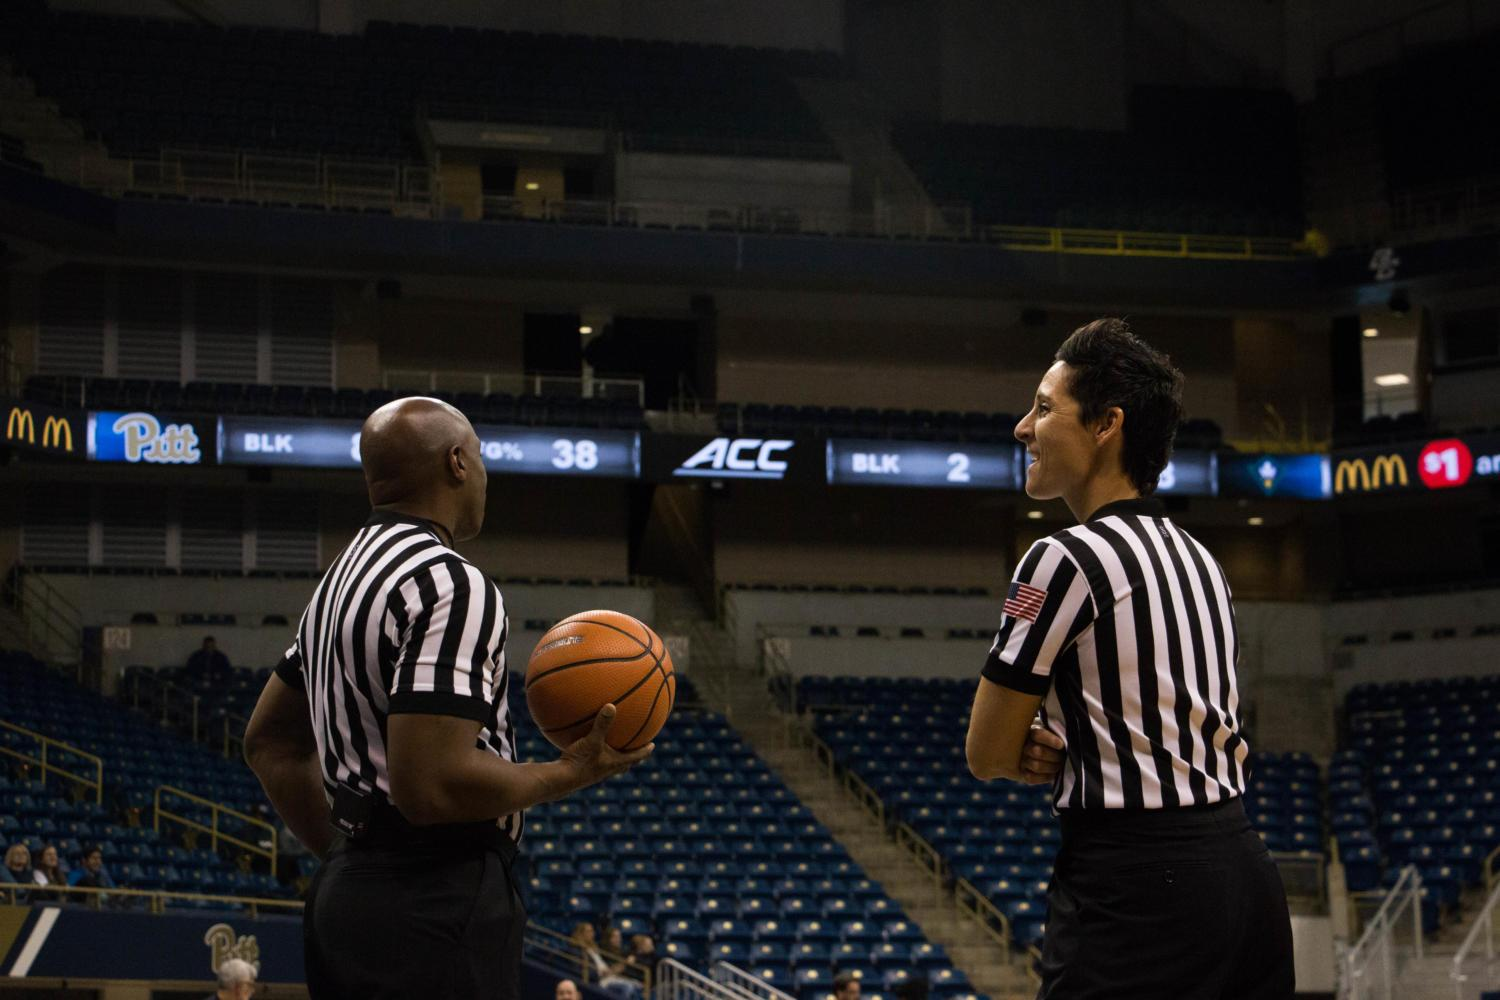 With the ACC's new refereeing scheduling policies, referees will have to travel less to cover more games. (Photo by Christian Snyder | Editor in Chief)